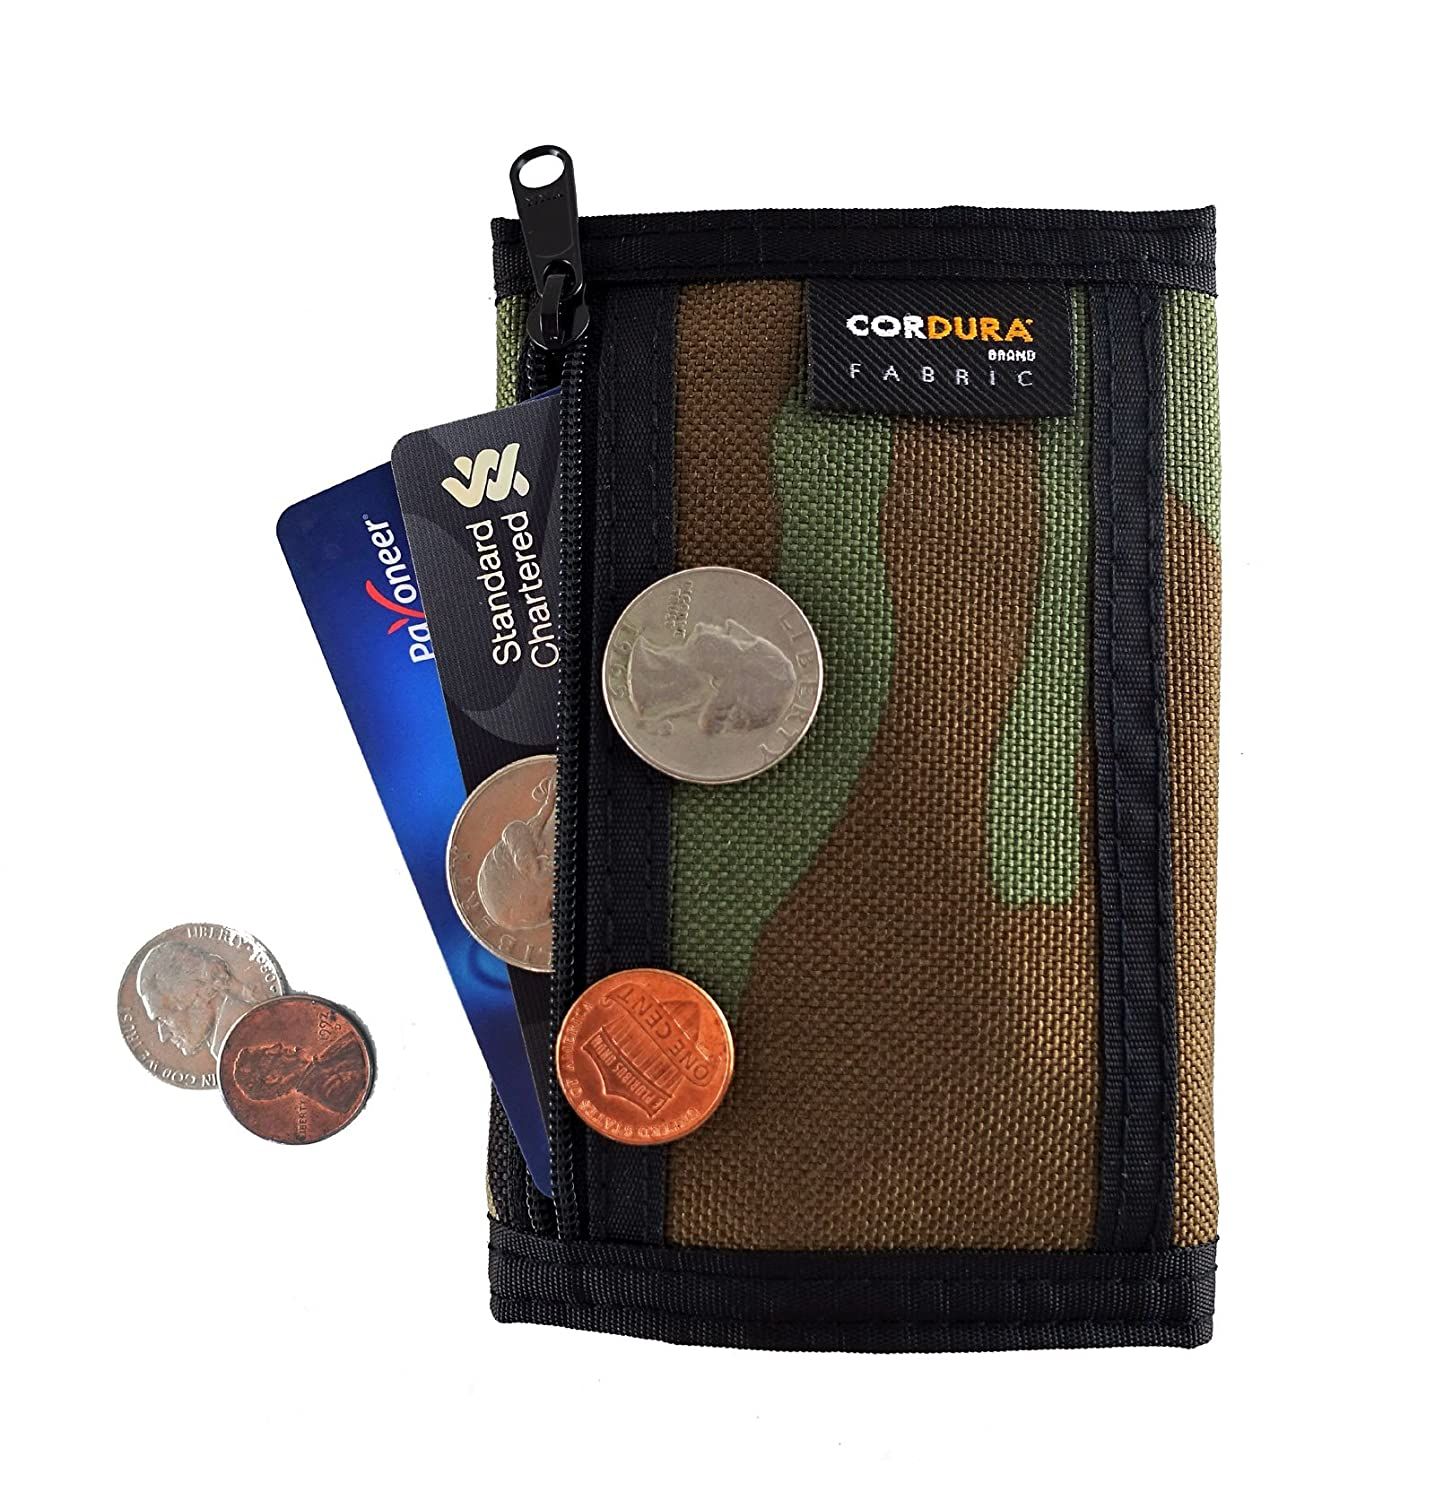 Rough Enough Small Mini Minimalist Travel Mens Front Pocket Wallet Card Holder Trifold Zipper Cash Bag Change Coin Purse Pouch Organizer with Party ...